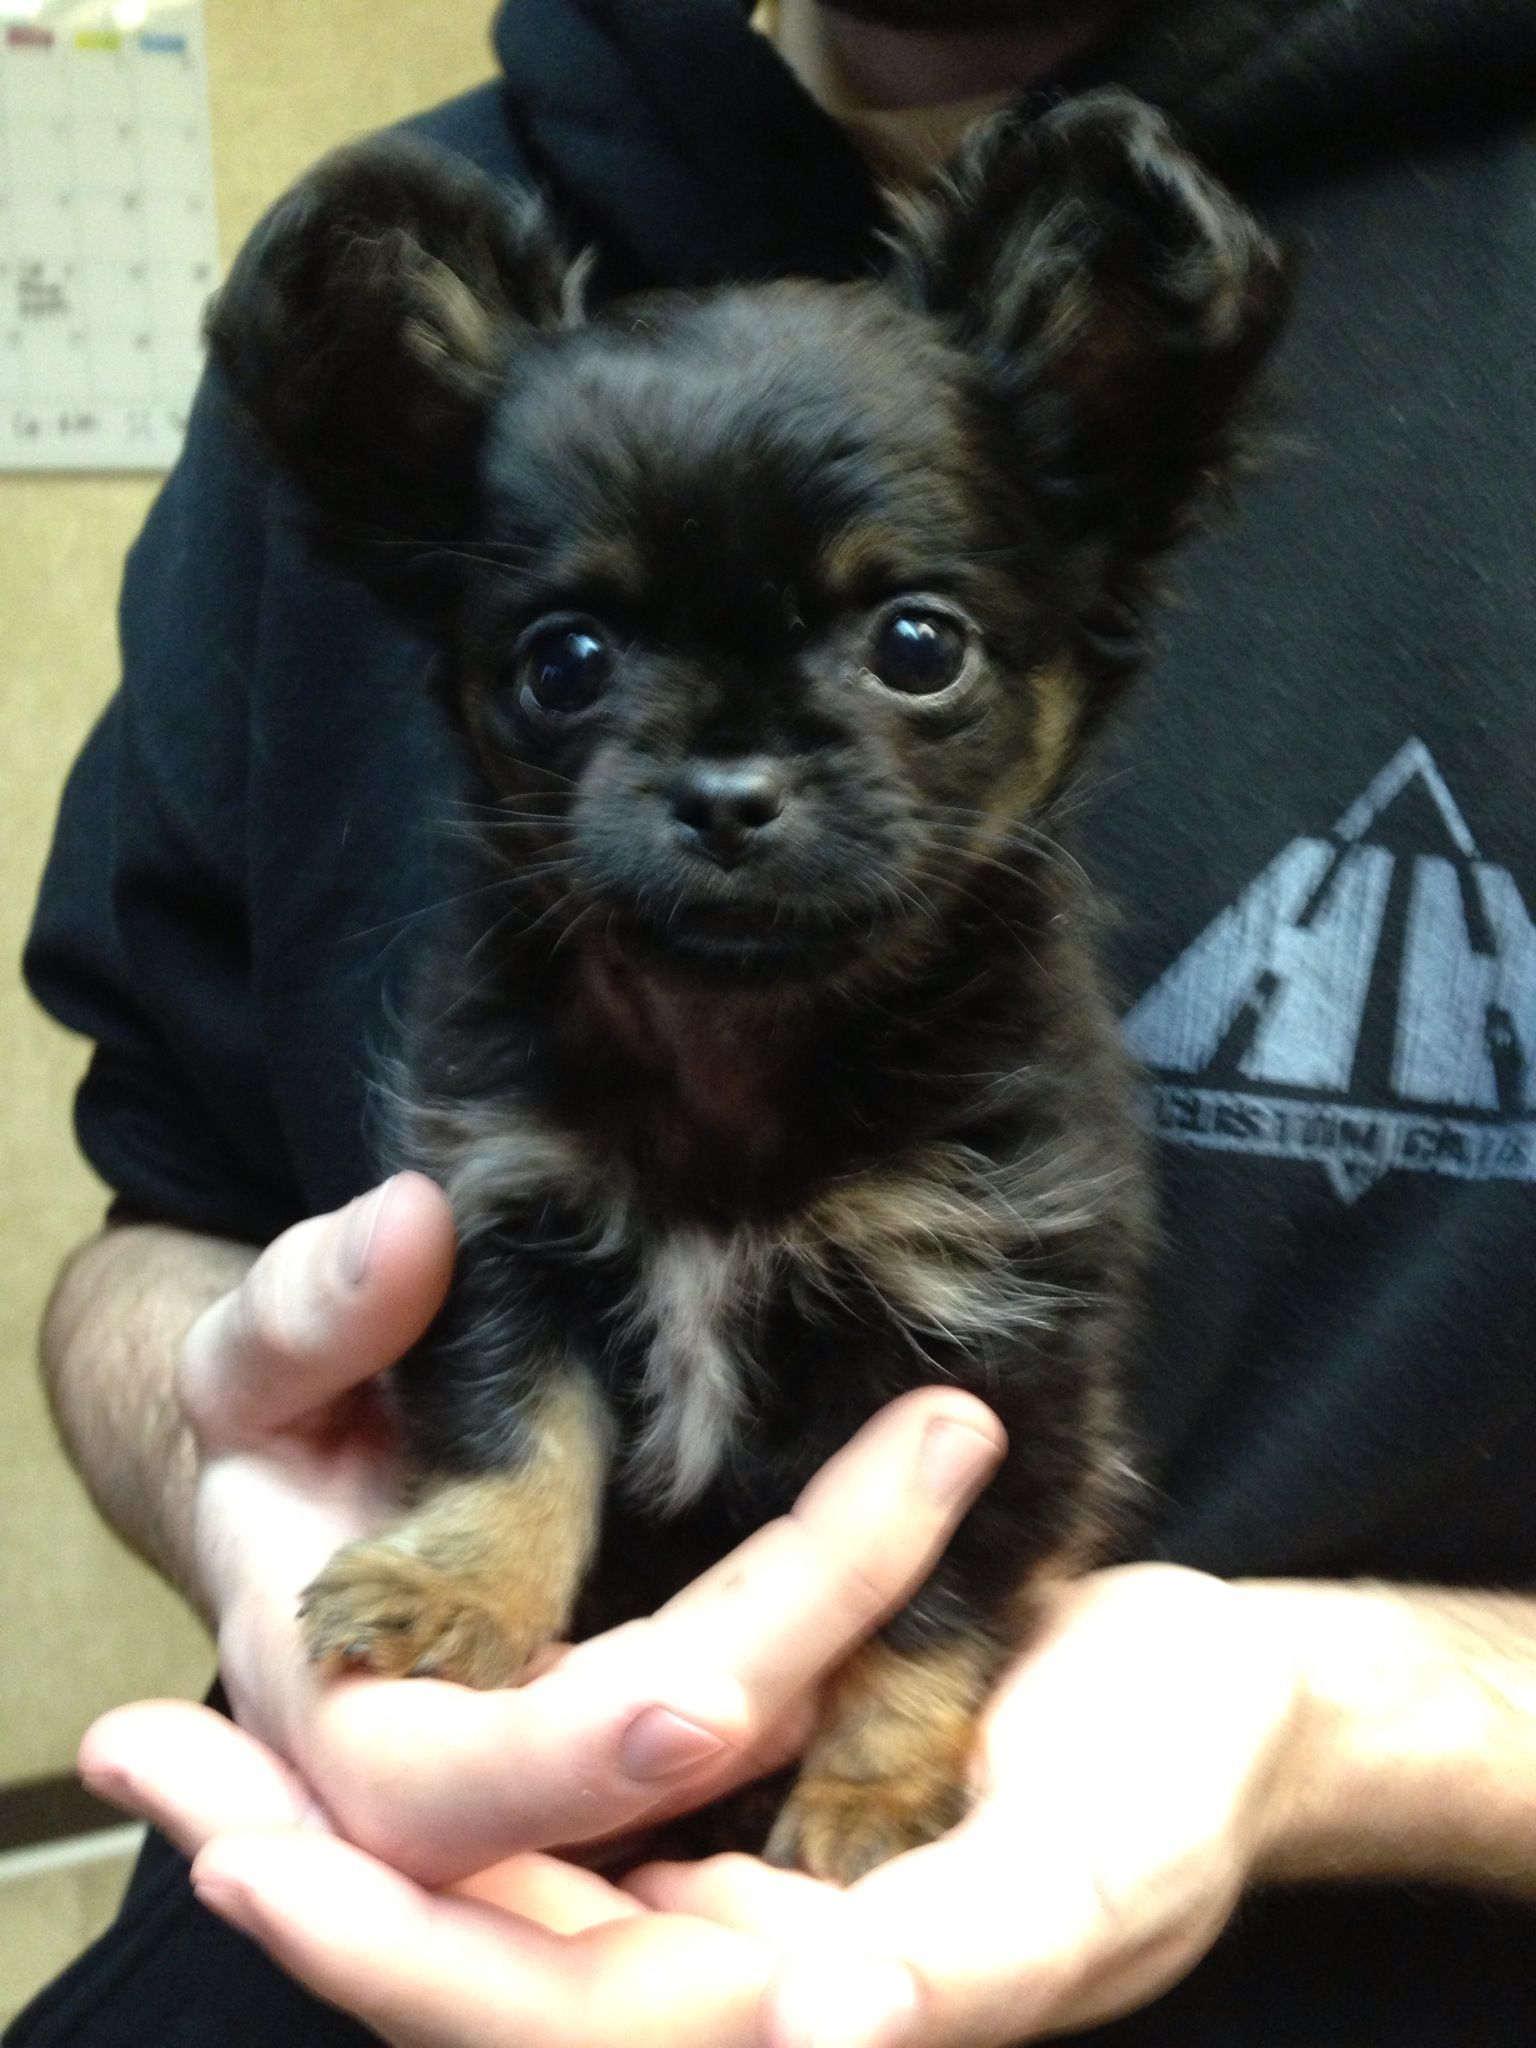 Long Haired Chihuahua This Looks Just Like My Dog When She Was A Puppy Chihuahua Chihuahua Chihuahua Puppies Baby Chihuahua